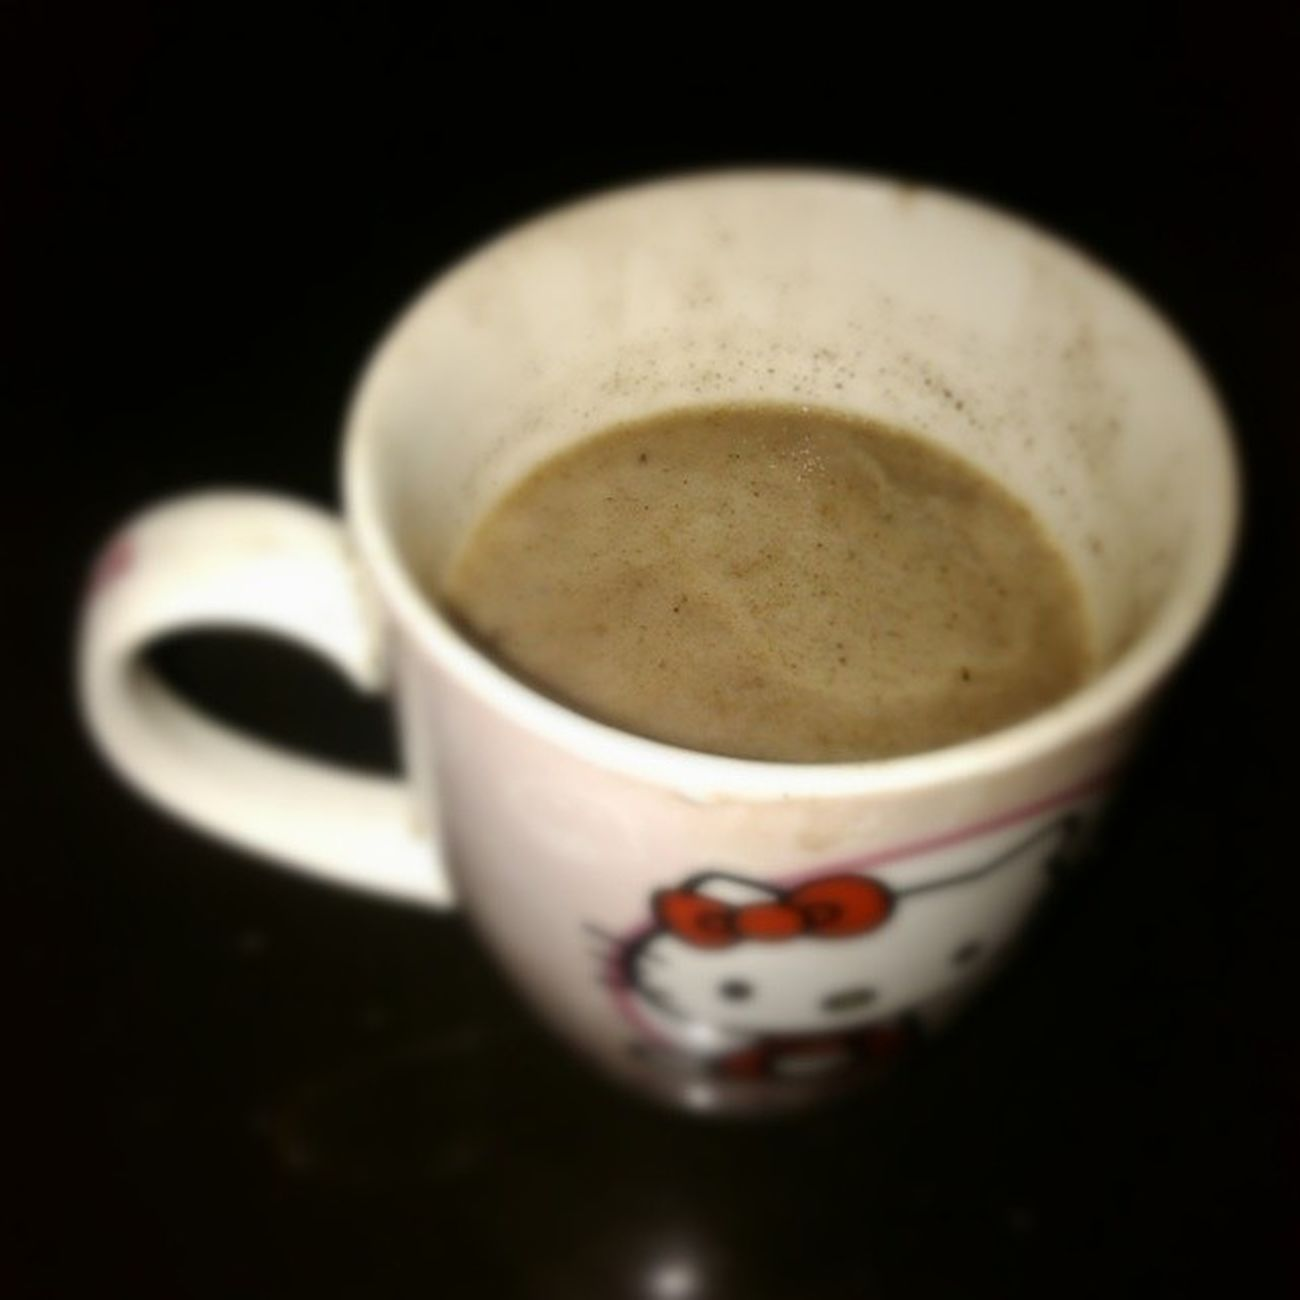 Good morning! Hotchoco Nakakamiss